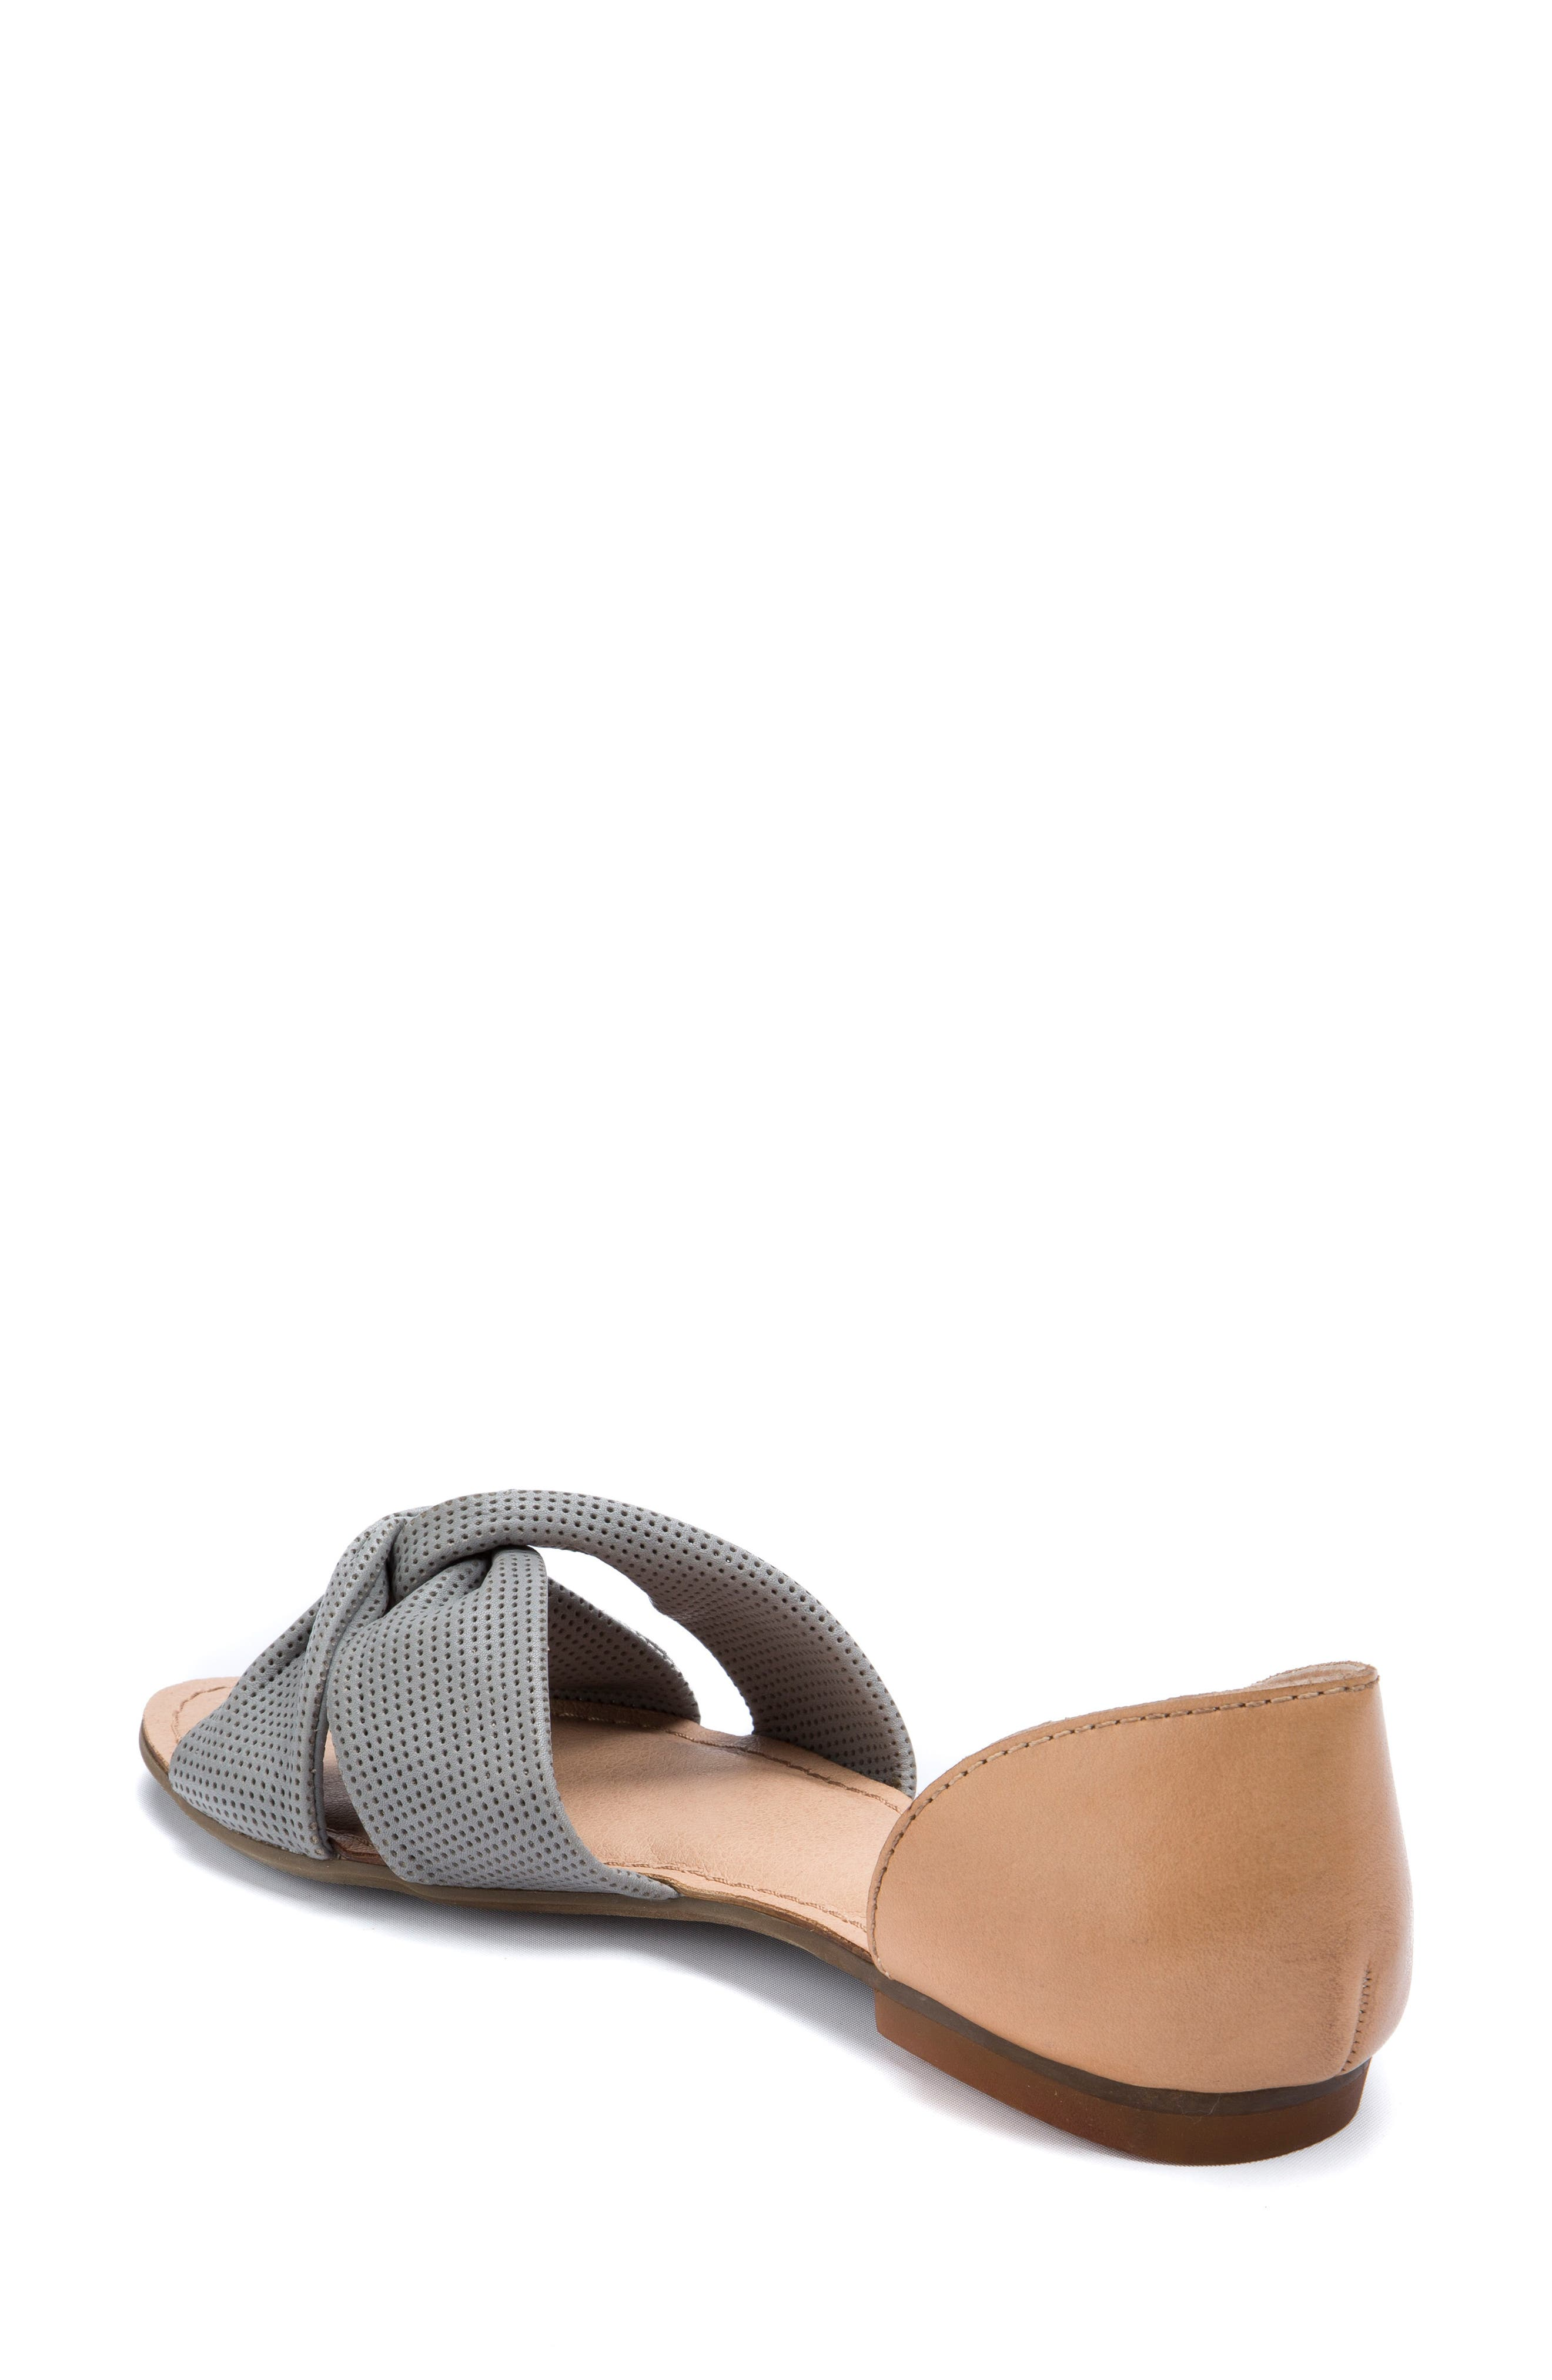 Darcy Perforated Flat Sandal,                             Alternate thumbnail 2, color,                             020